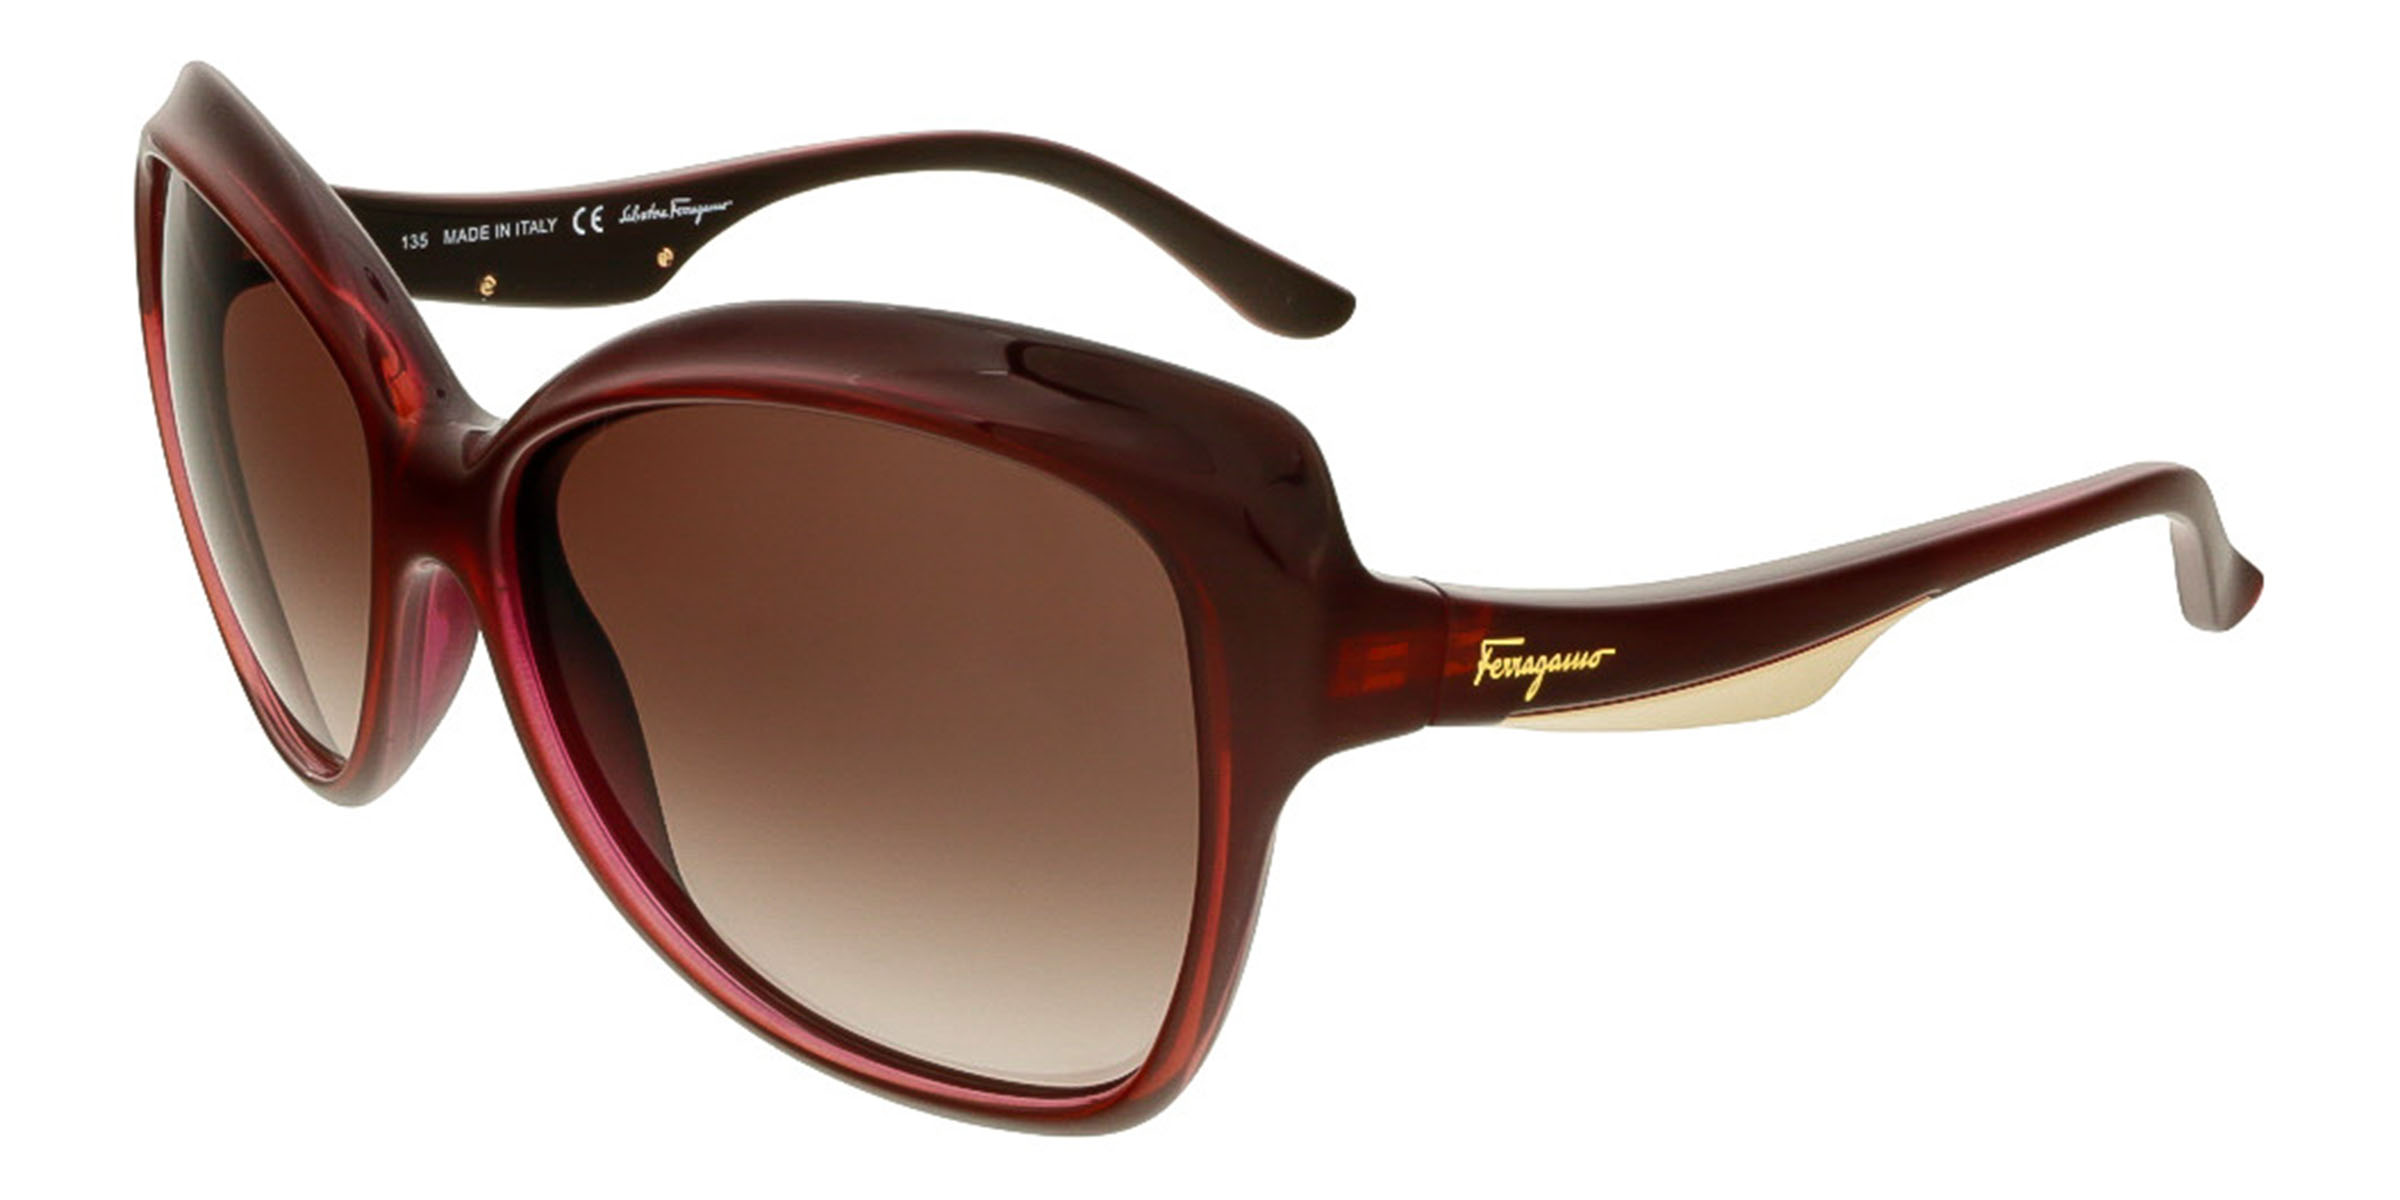 Salvatore Ferragamo SF706S 505 Plum Square Sunglasses